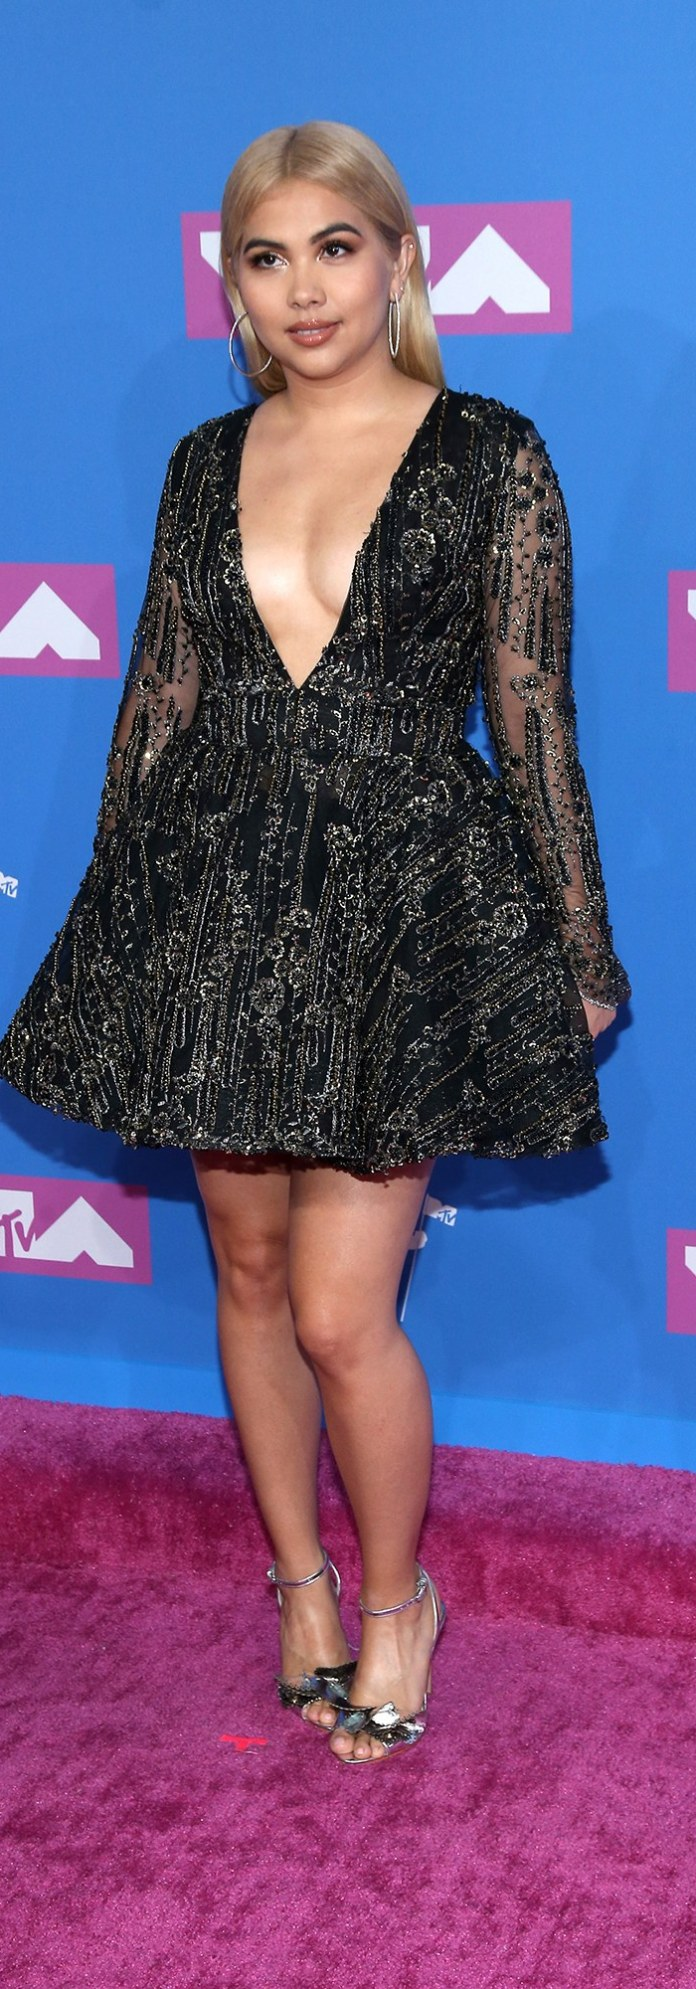 mtv-video-music-awards-vma-2018-red-carpet-hayley-kiyoko